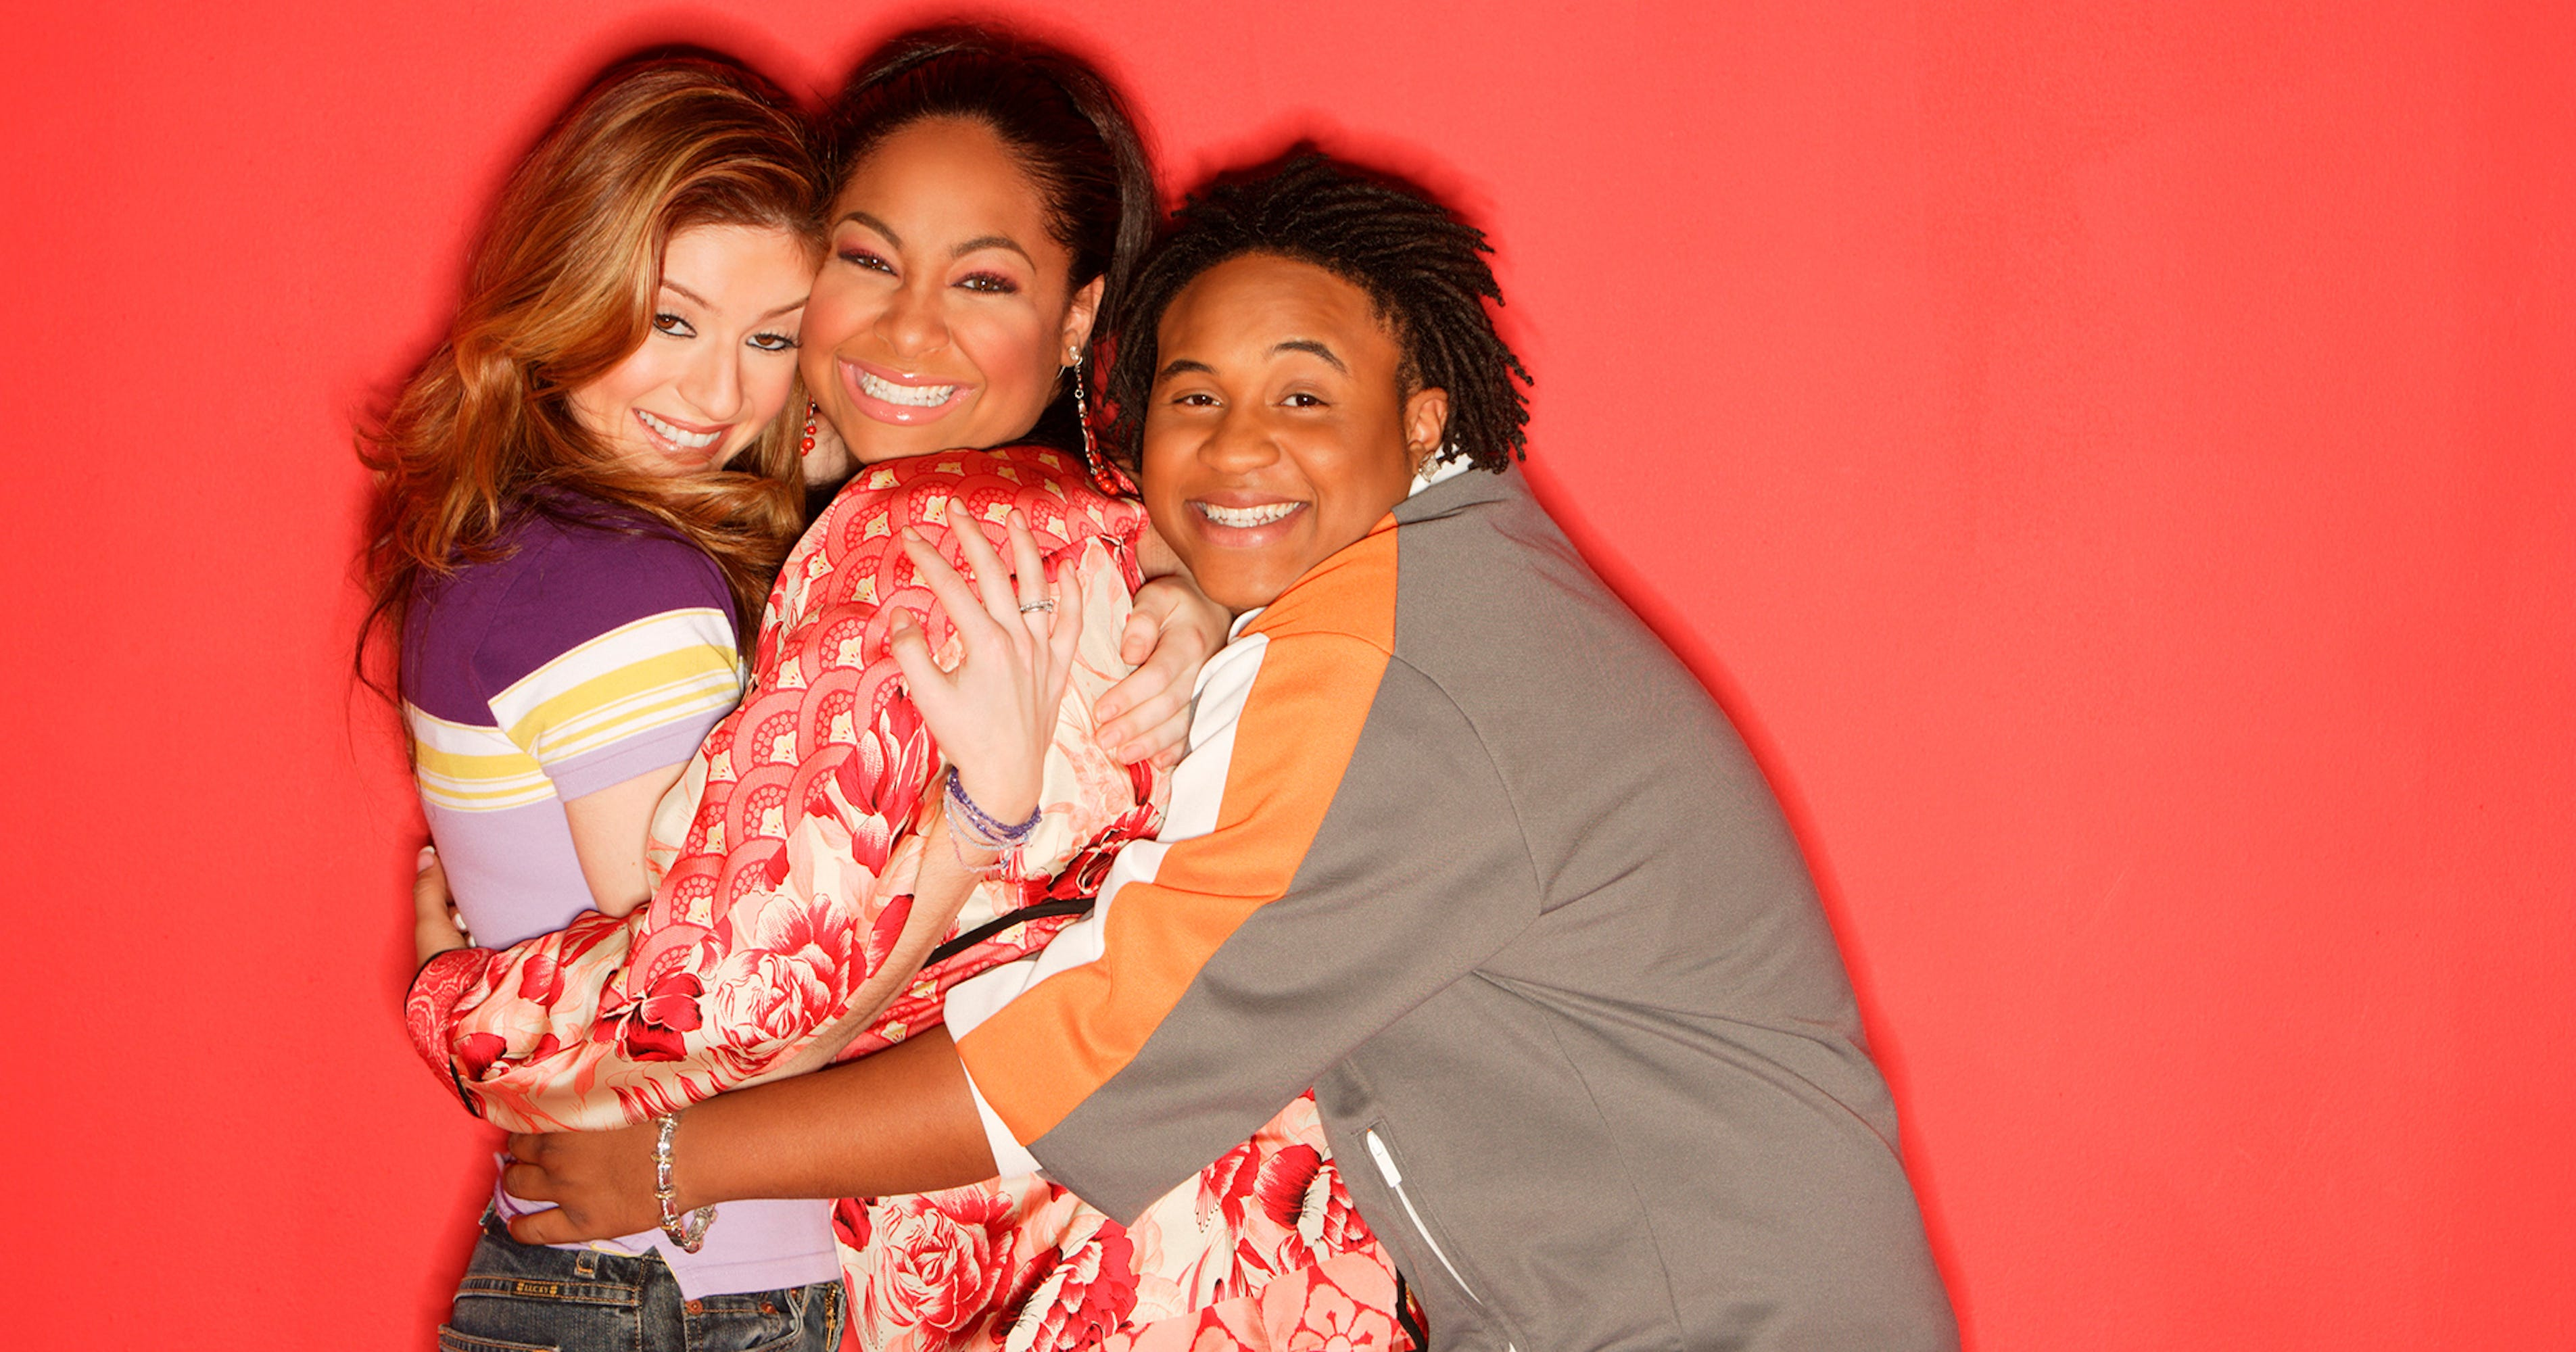 Thats So Raven Cast Where Are They Now, Disney Spinoff